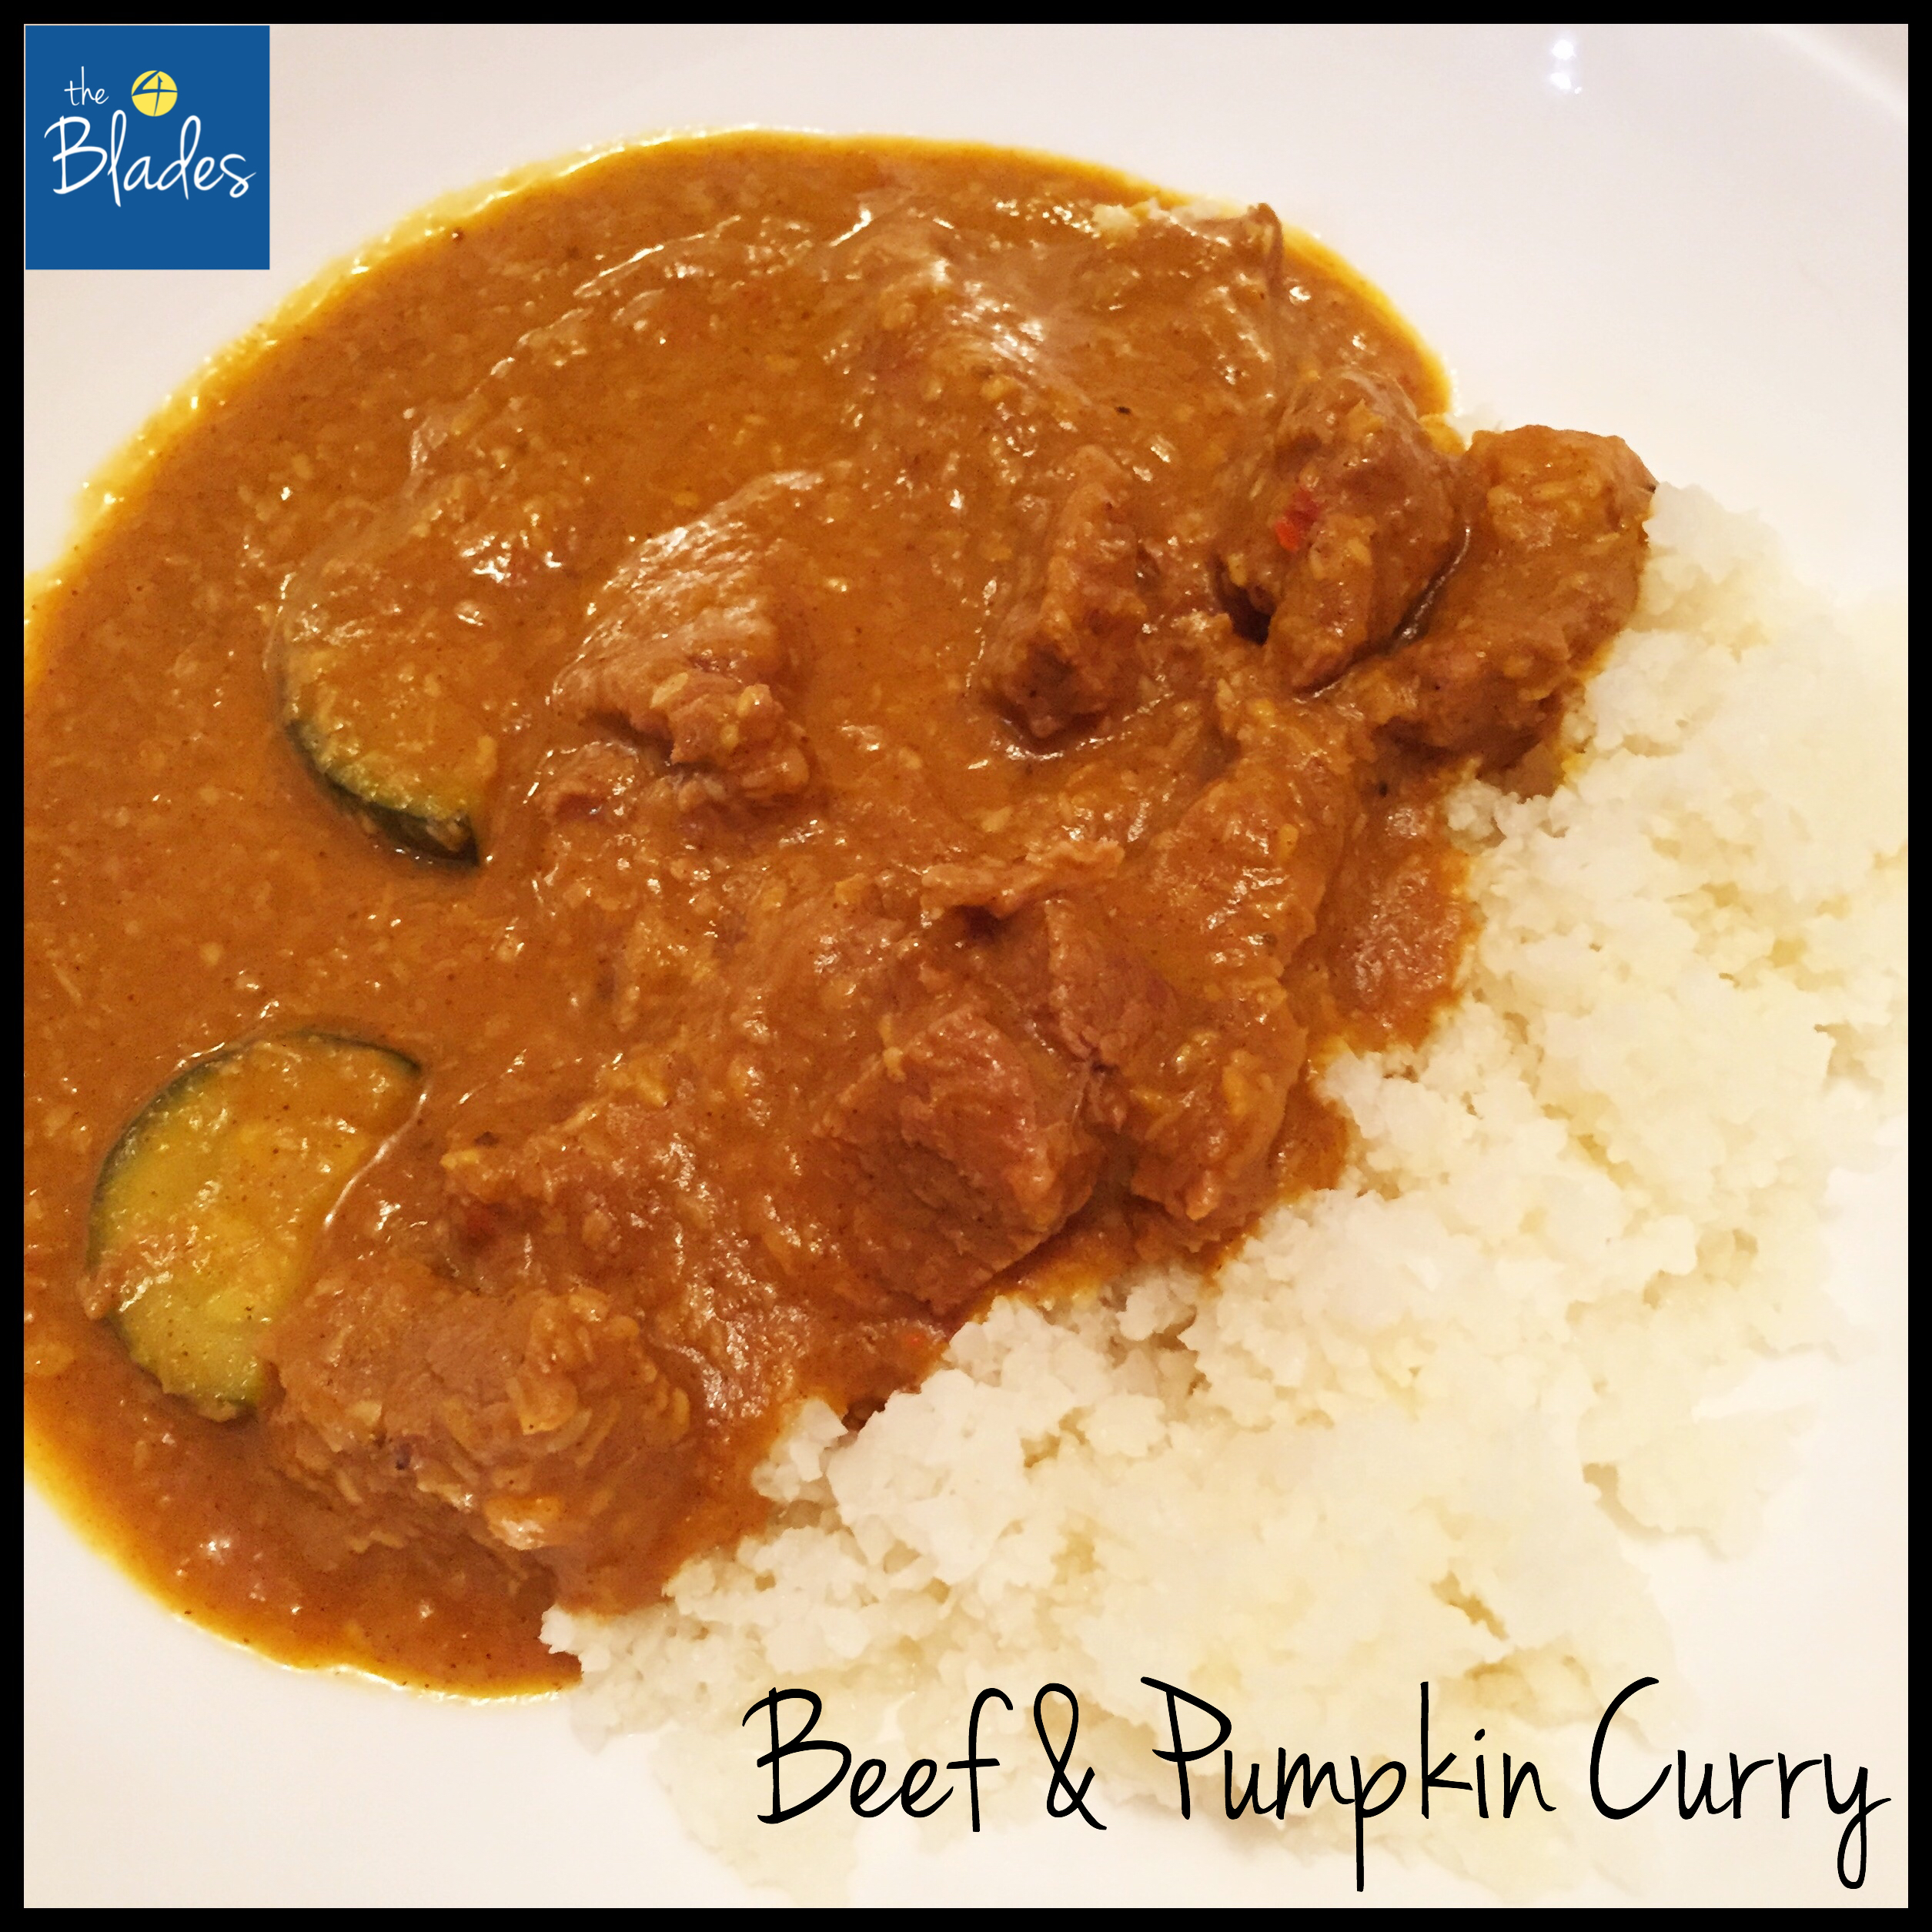 Beef & Pumpkin Curry Thermomix Recipe - The 4 Blades